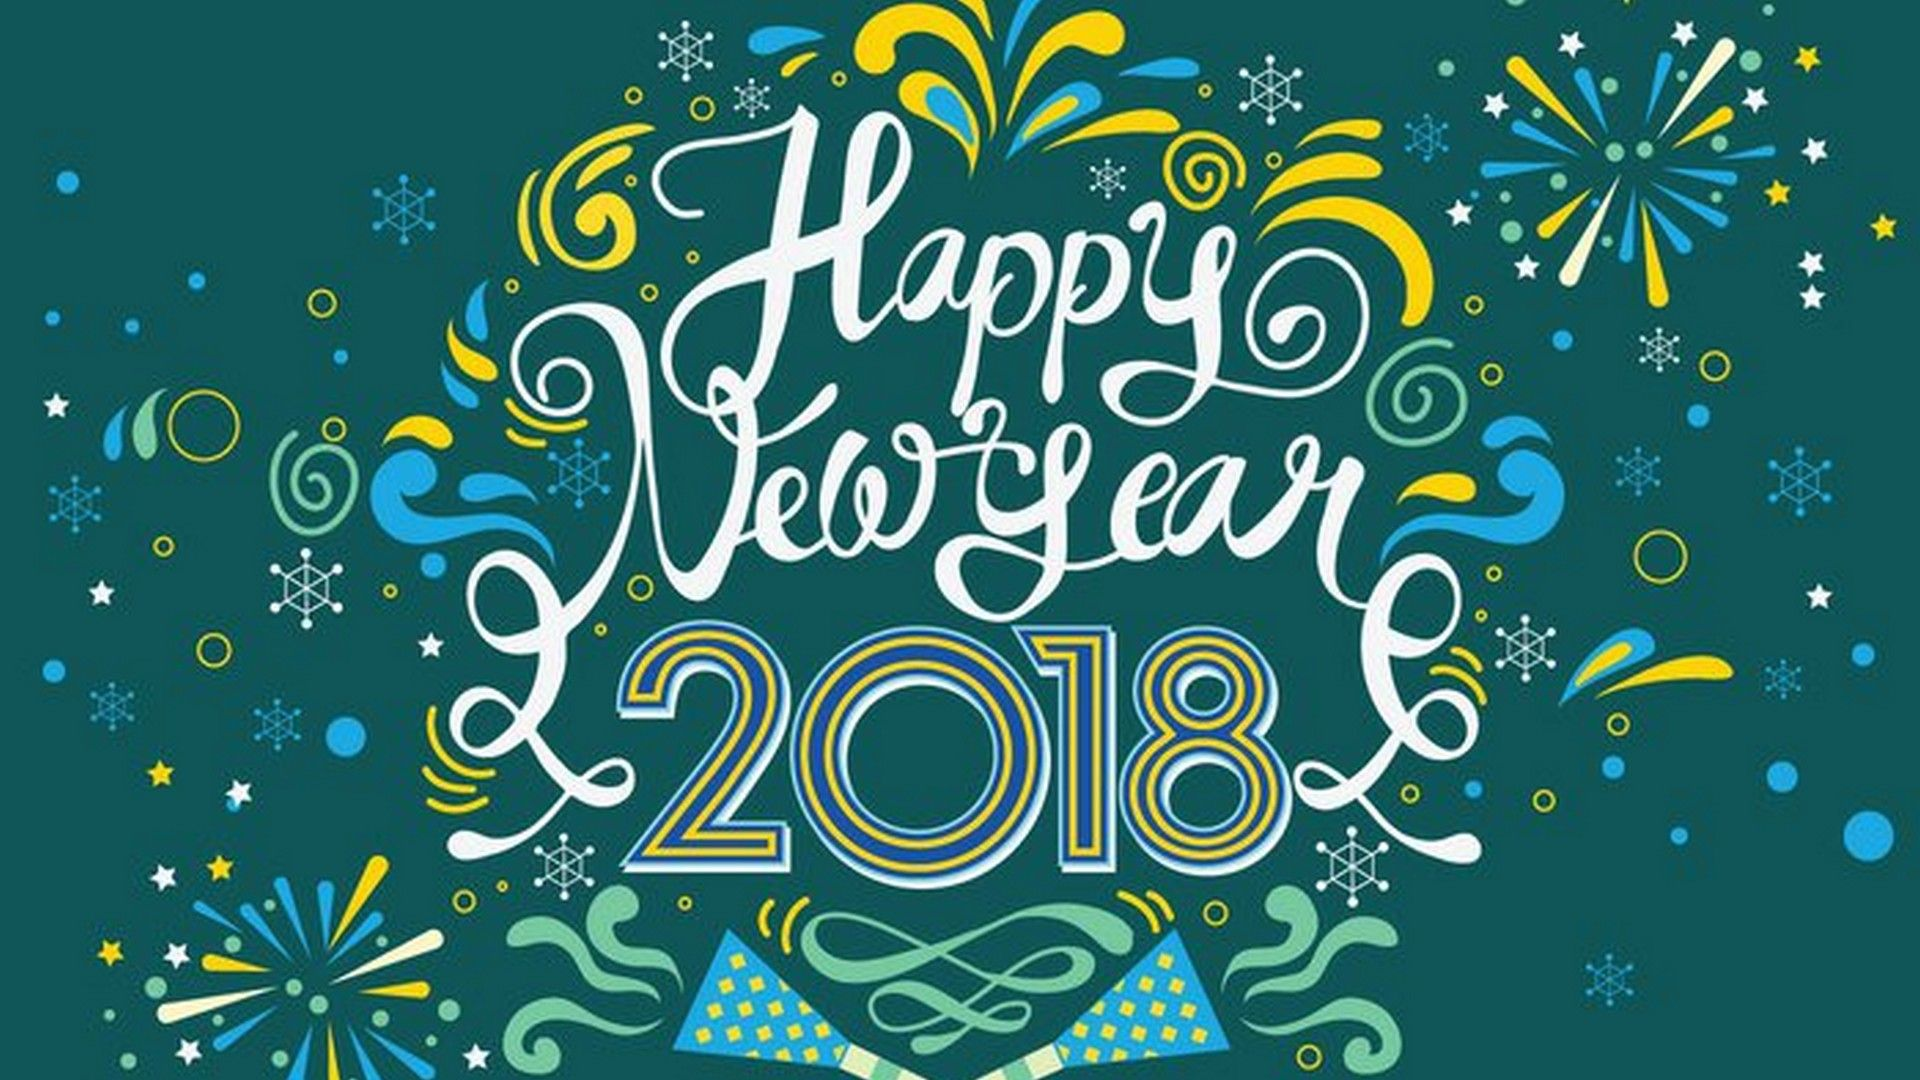 happy new year 2018 wallpaper best wallpaper hd